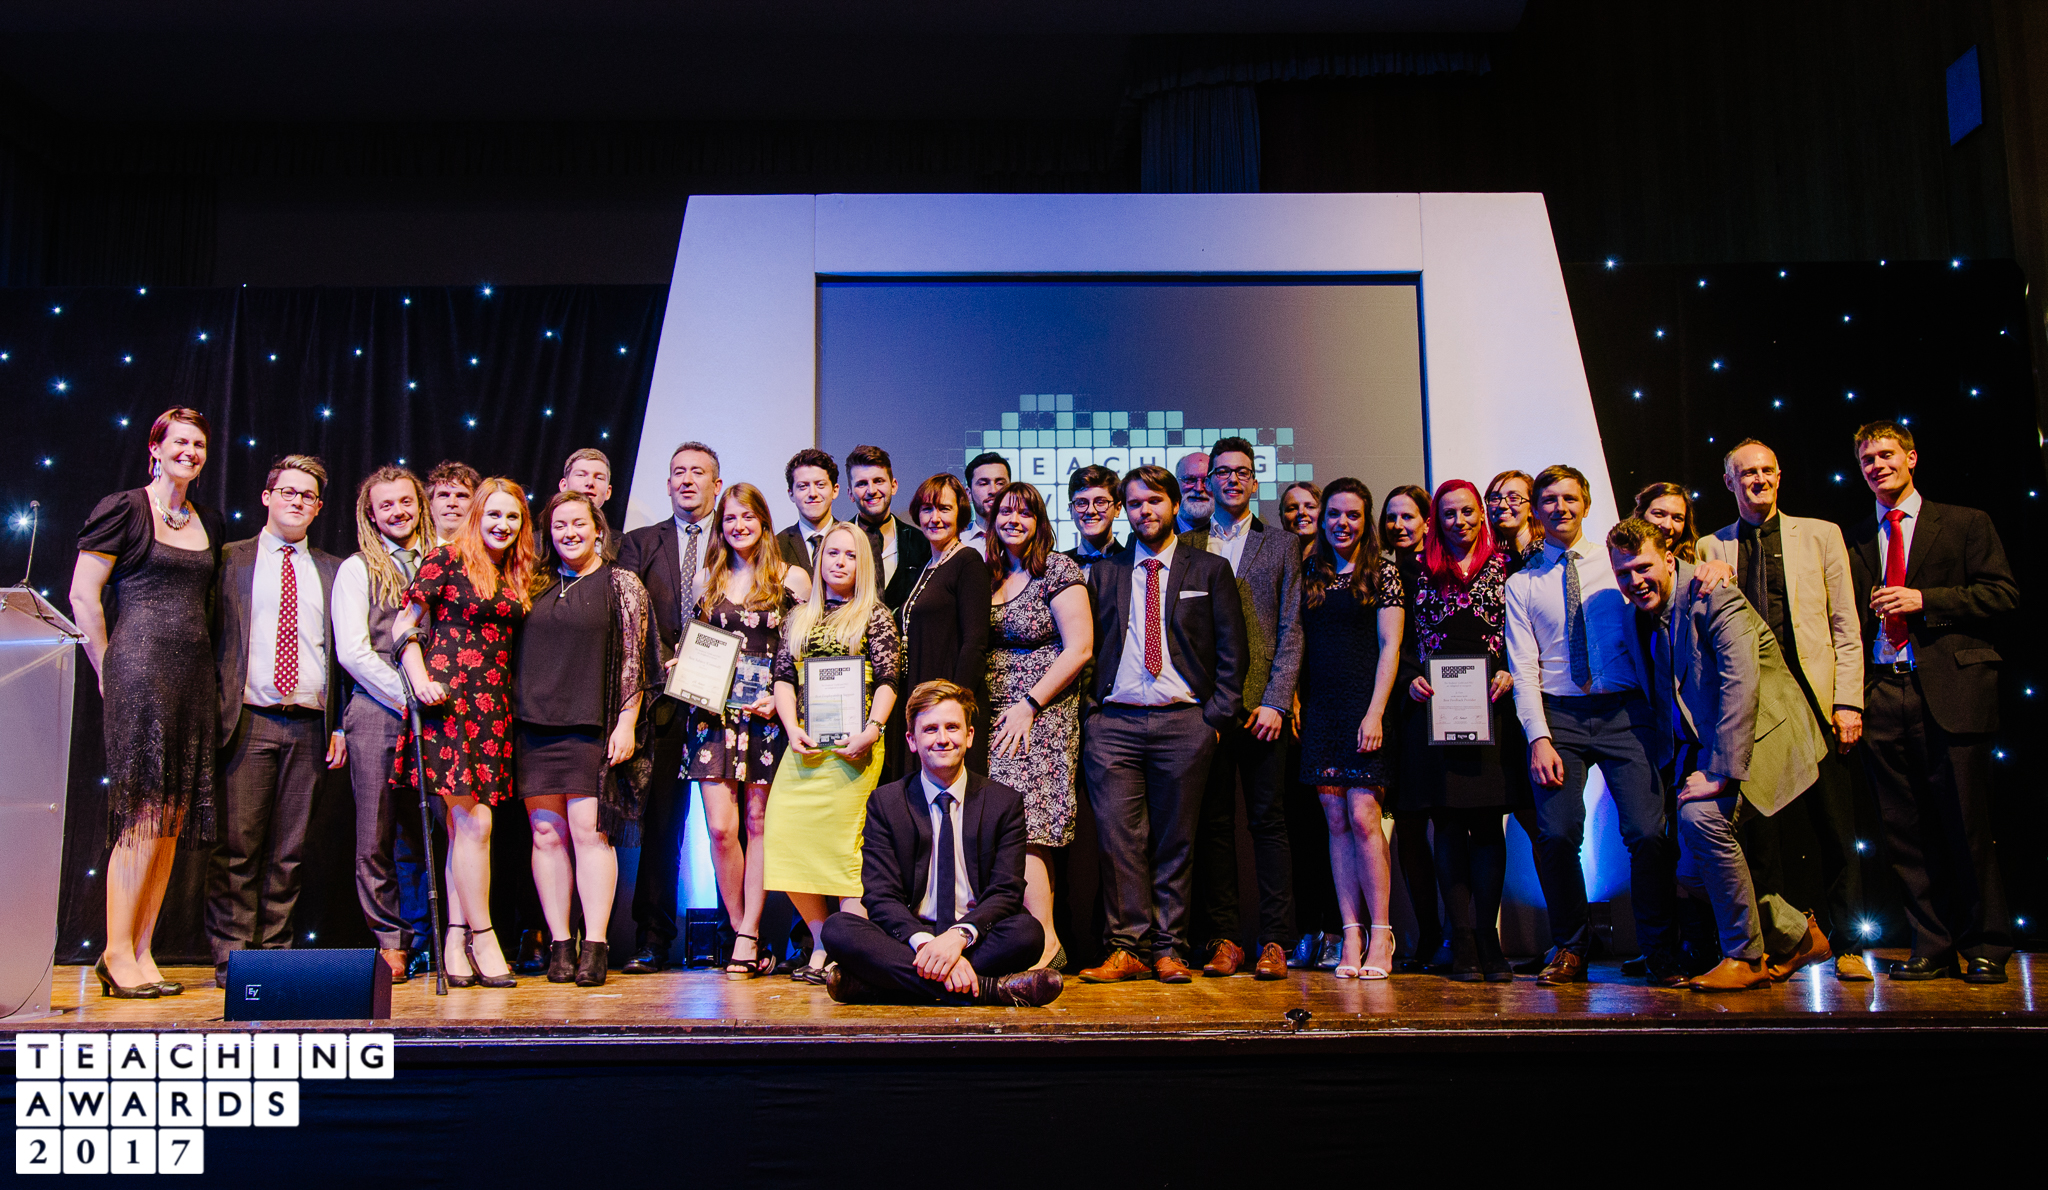 The University of Exeter Teaching Awards in partnership with FXU and the Students' Guild